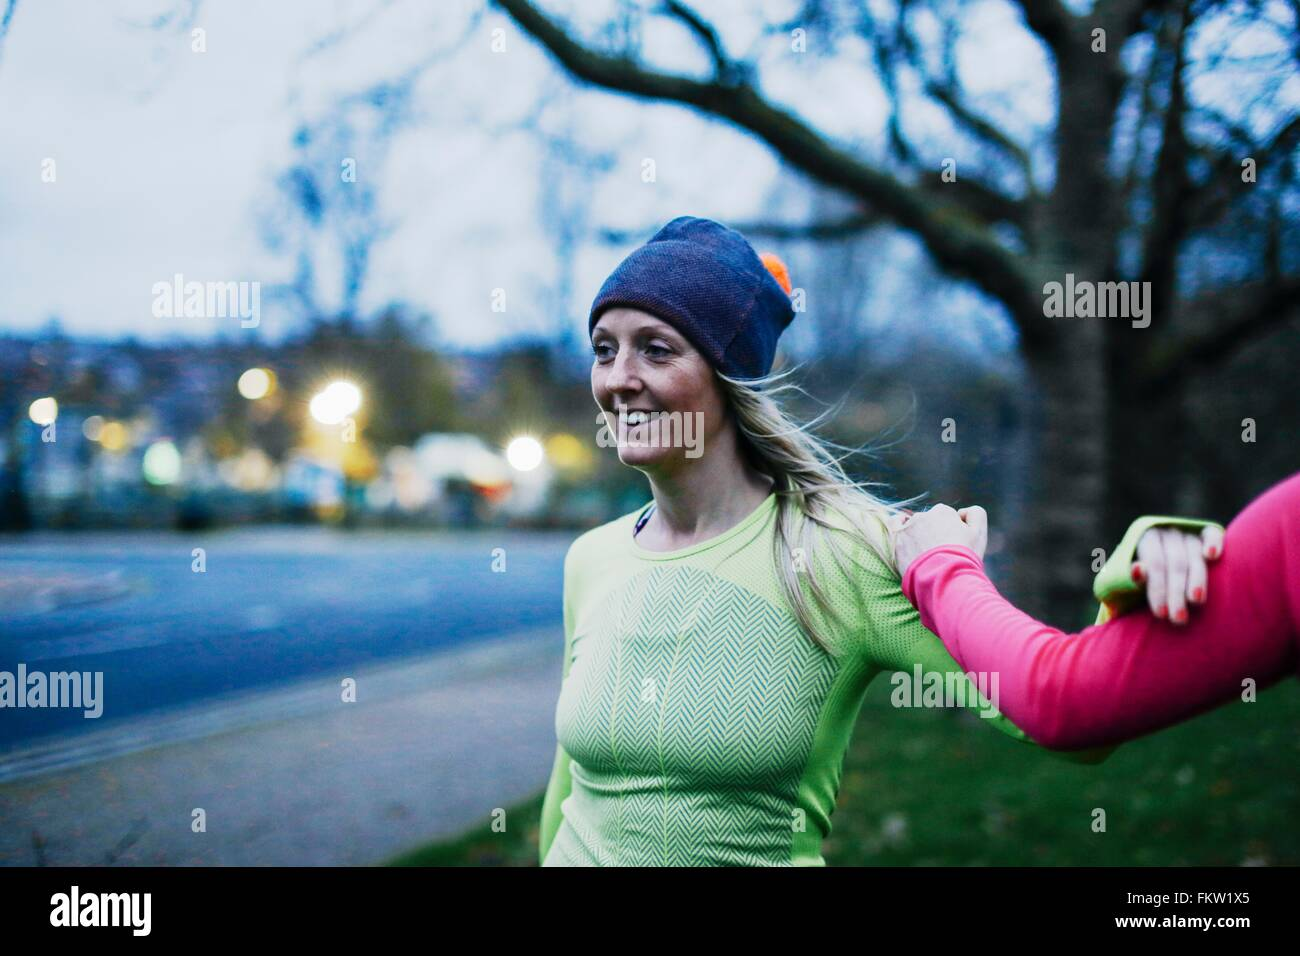 Two adult female runners warming up on city verge at dusk - Stock Image